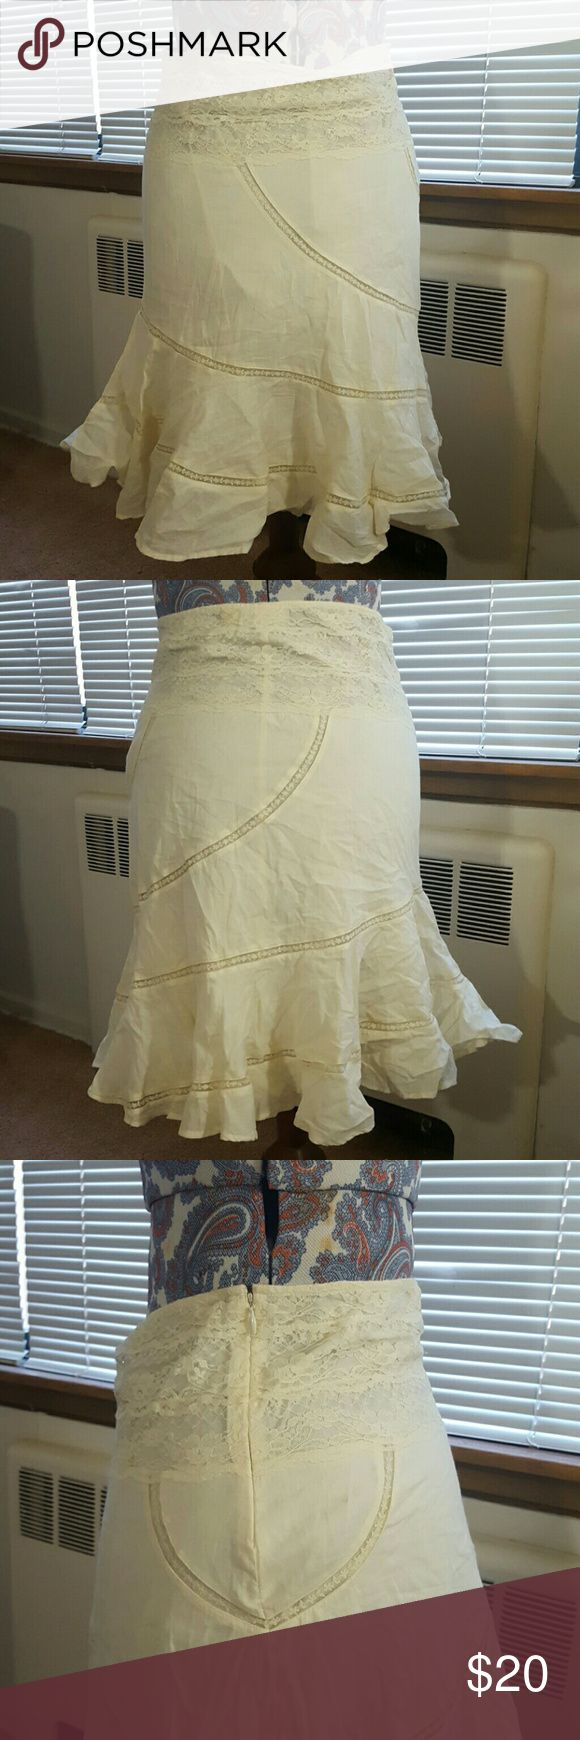 DKNY jeans lace trim skirt EUC Color: beige Hidden zipper on left side  100% cotton DKNY Jeans Skirts Midi